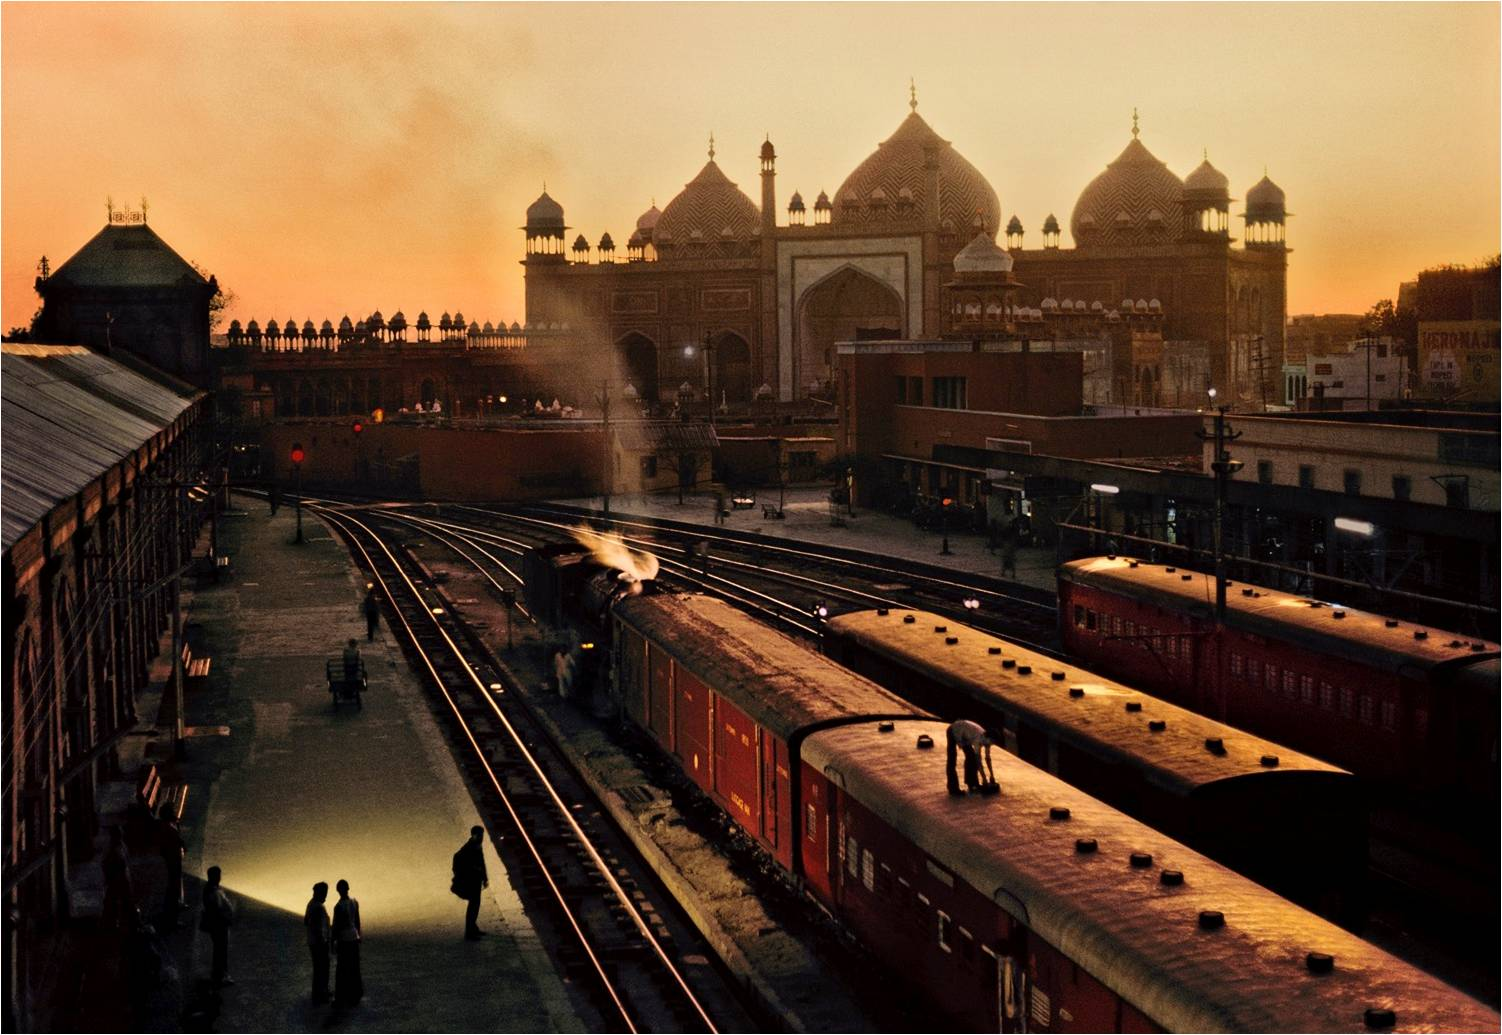 Agra Fort train station at dusk, 1983. (Photograph by Steve McCurry. Courtesy Phaidon/Roli Books)